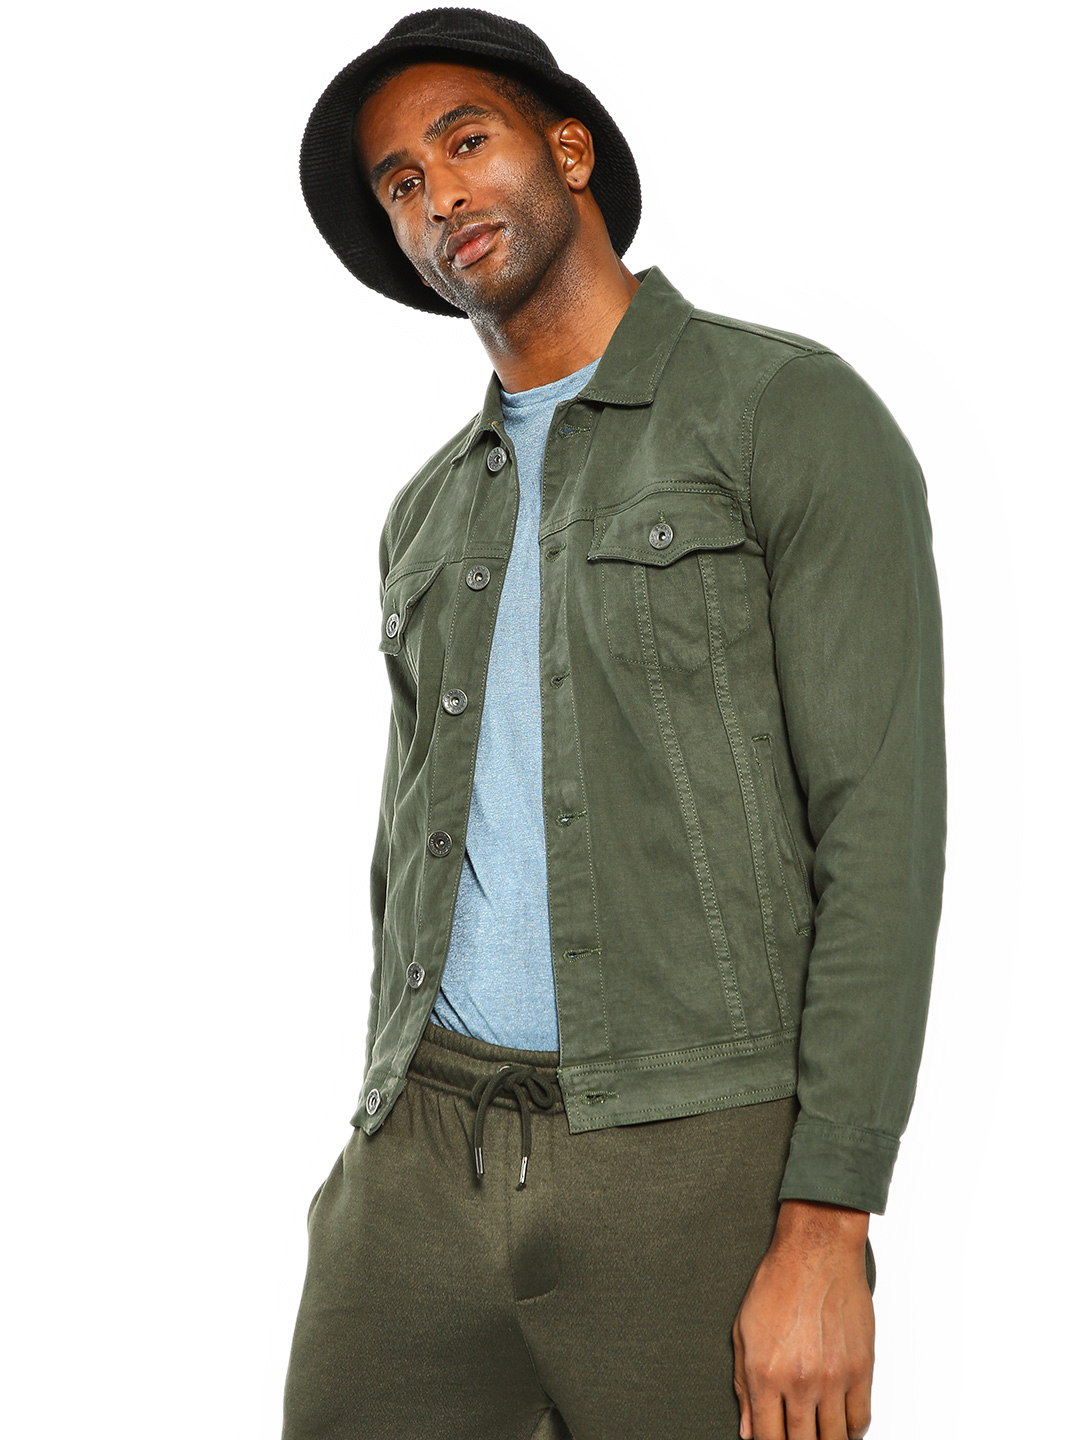 K Denim Olive KOOVS Overdyed Trucker Denim Jacket 1